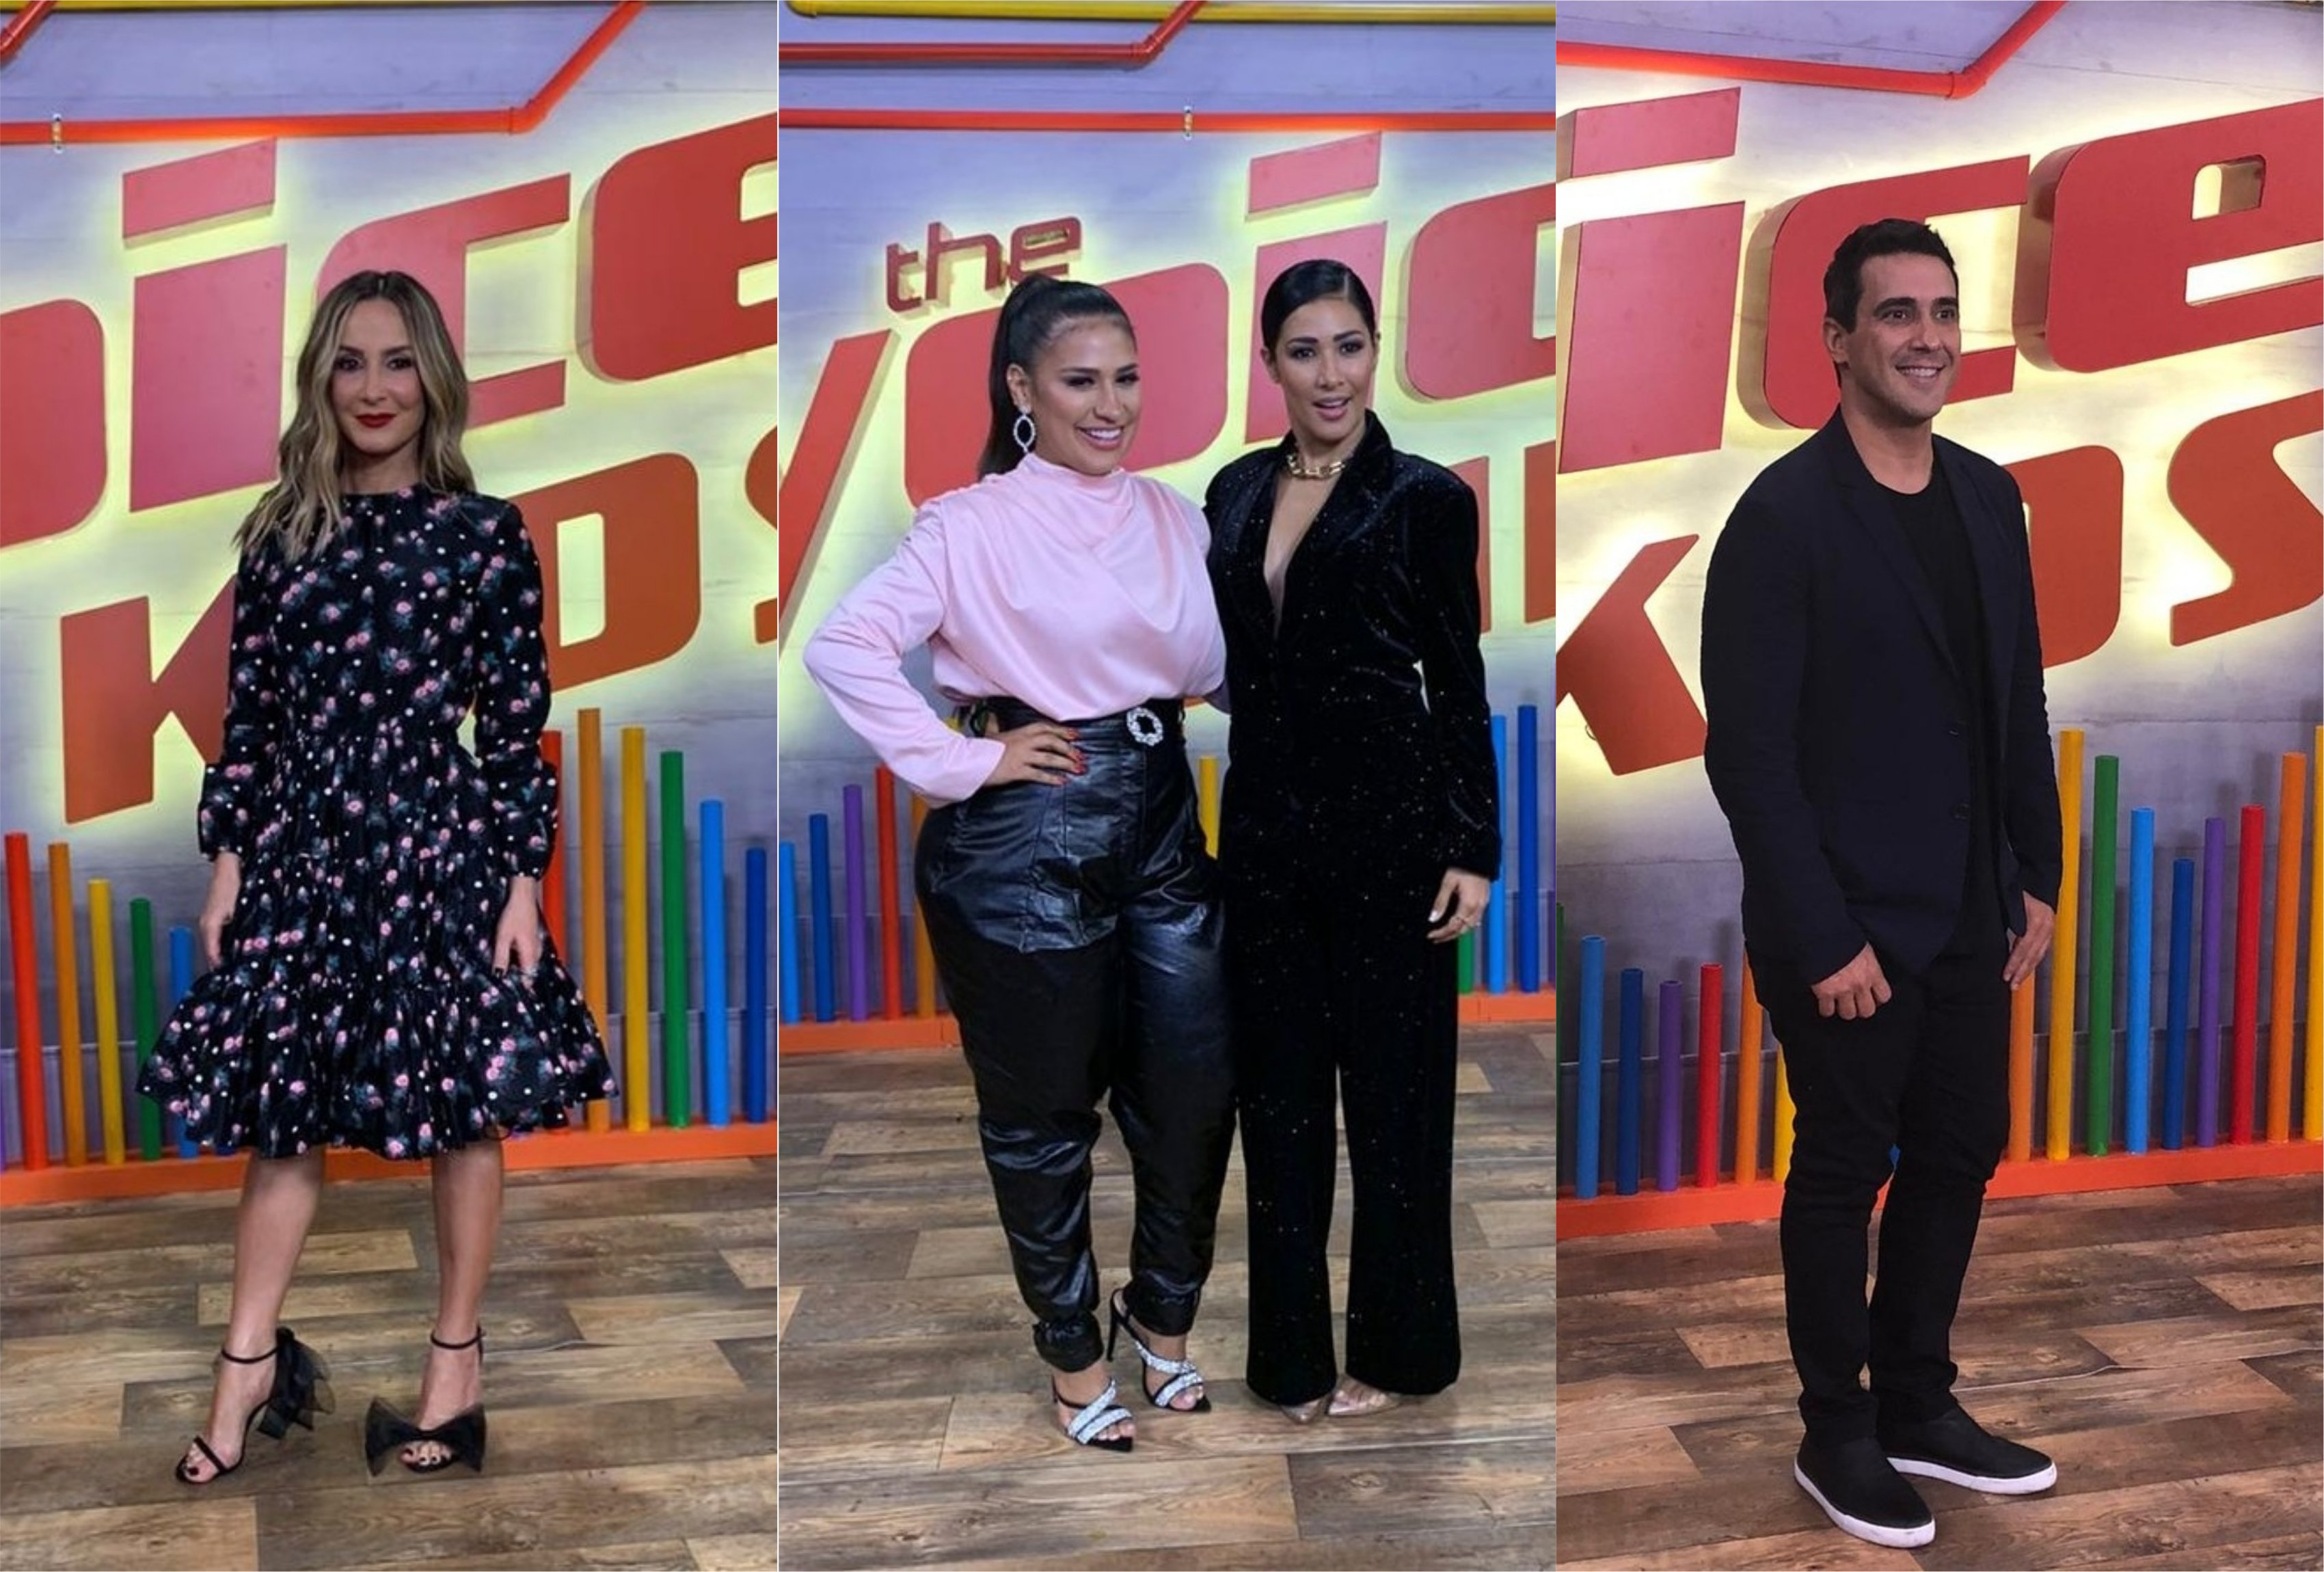 Claudia Leitte, André Marques e Simone e Simaria durante a coletiva do The Voice Kids na Globo (Foto: Montagem/TV Foco)